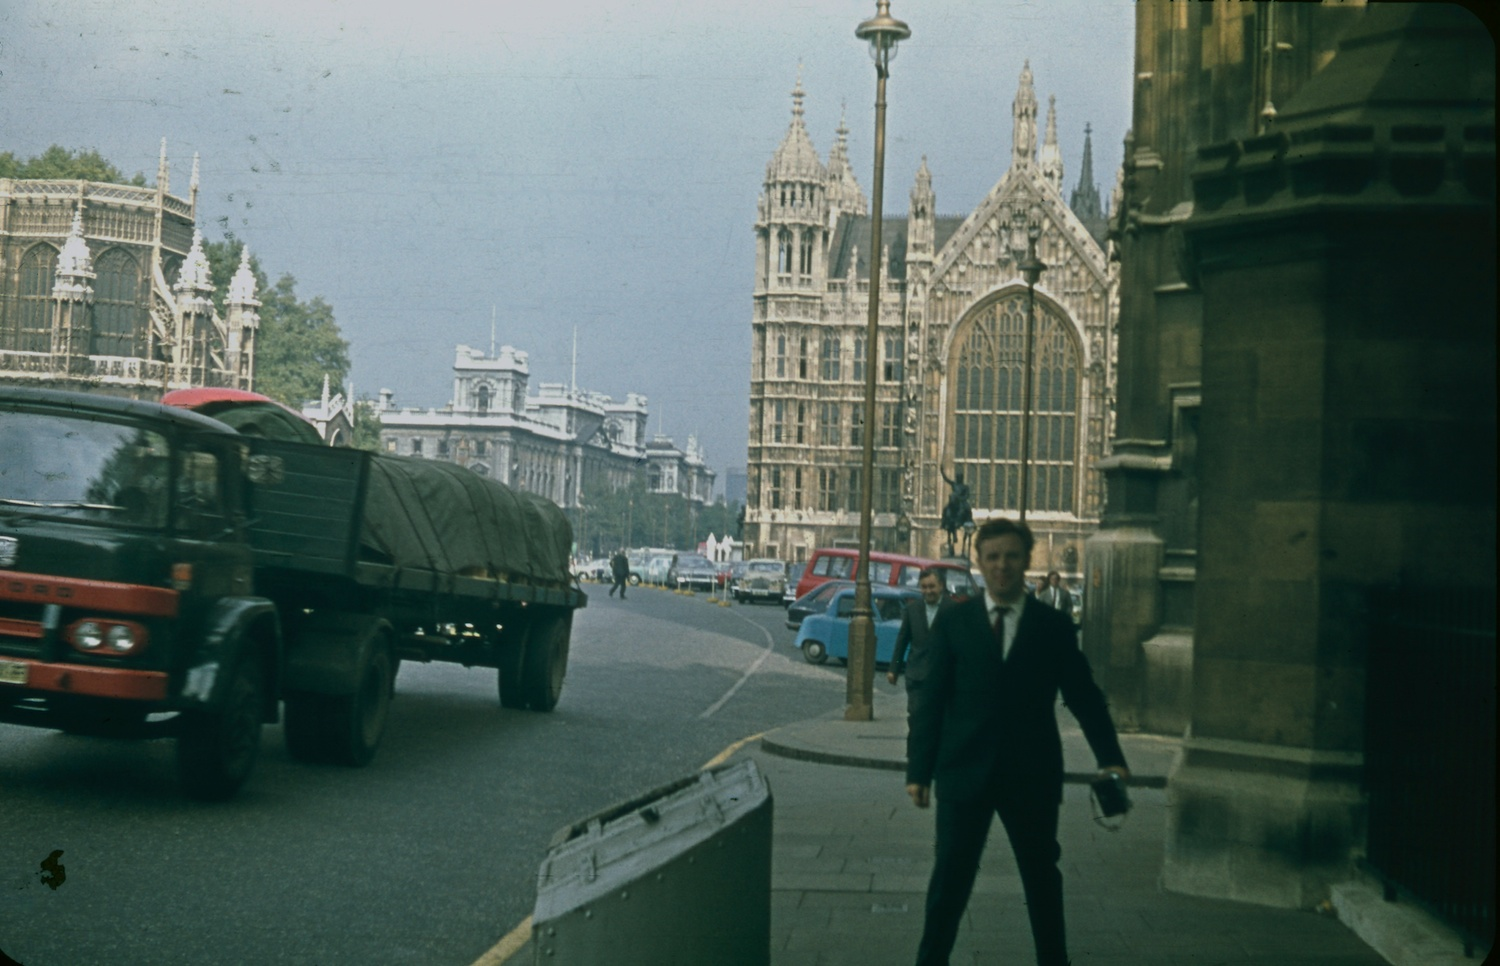 London 1970 Westminster Abbey